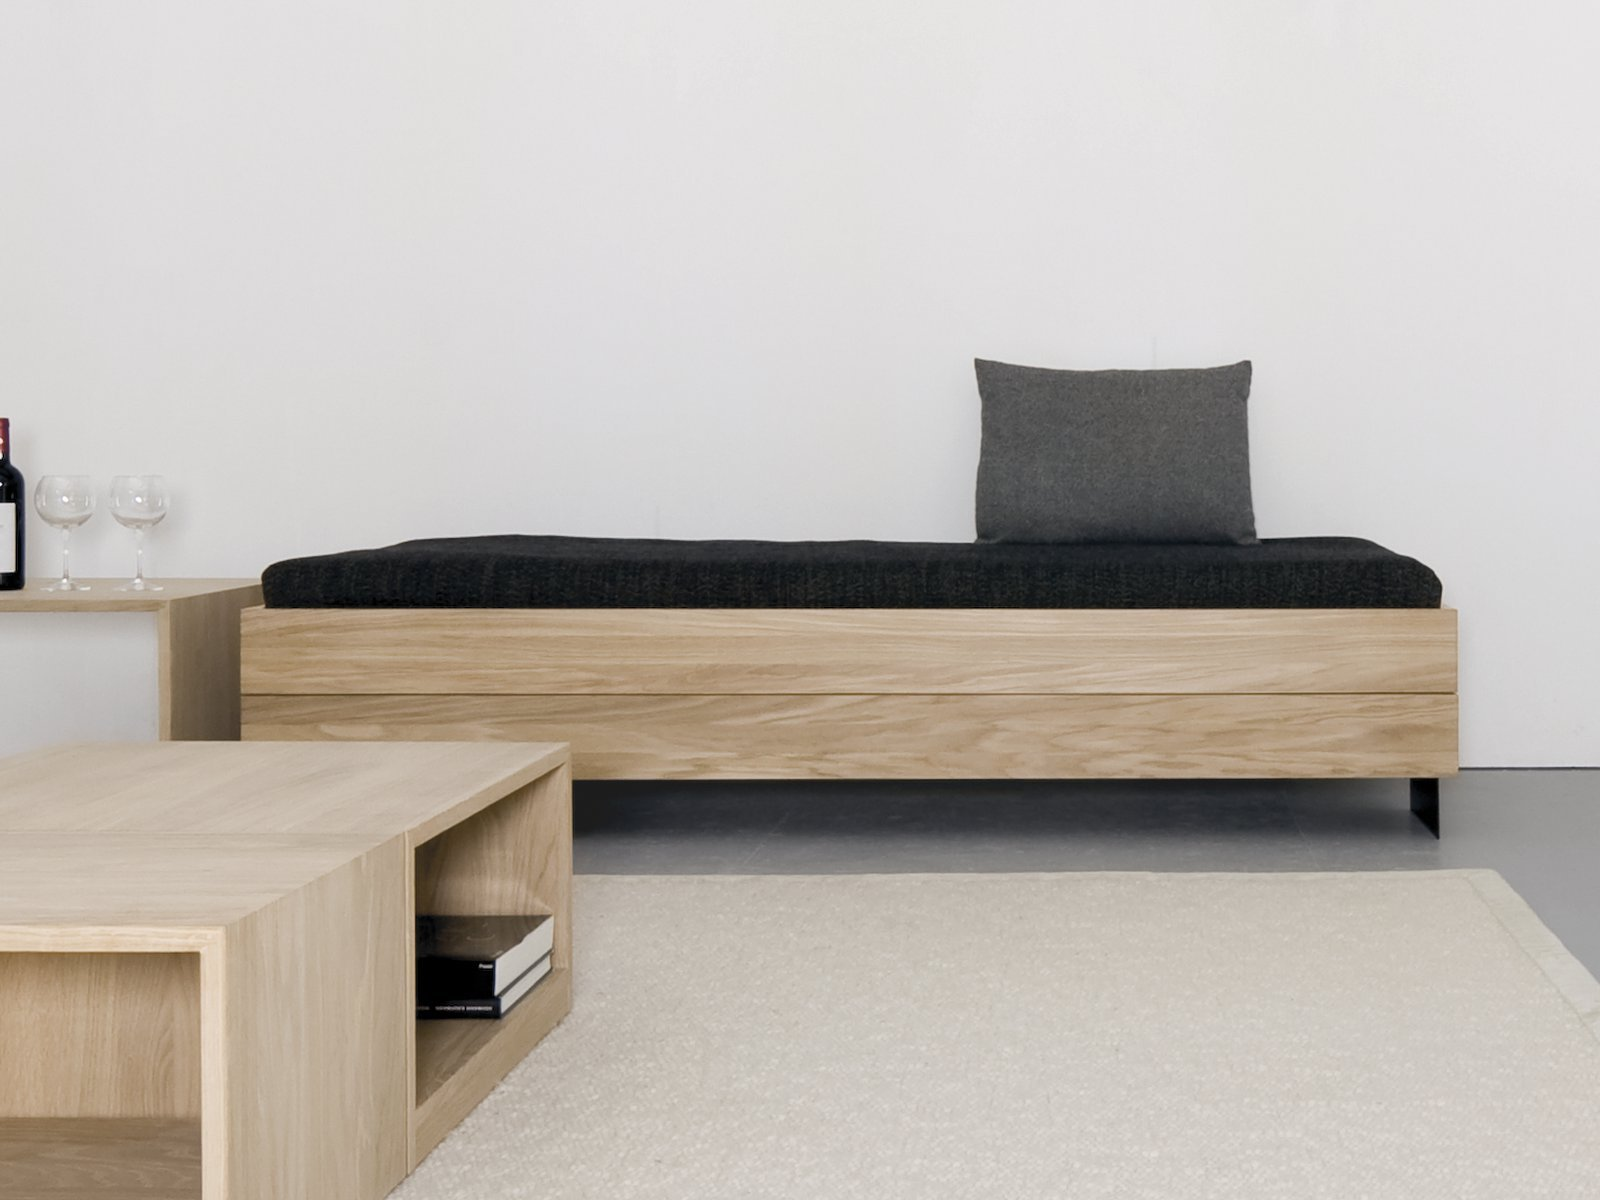 Solid Wood Sofa Bed Iku By Sanktjohanser Design Matthias Hubert Sanktjohanser